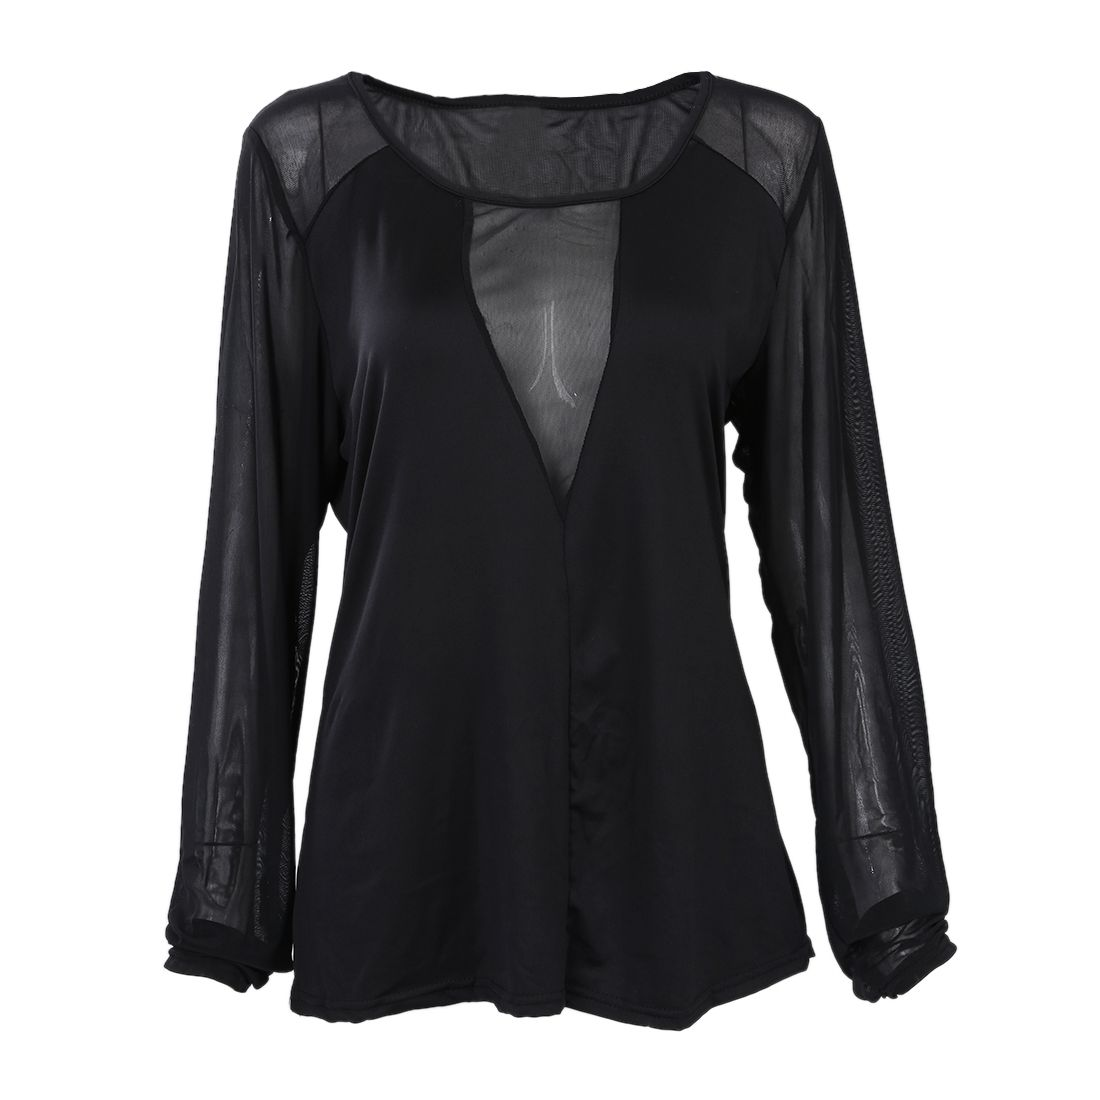 Women Autumn Sexy Mesh Splice Tops O-Neck Long Sleeve Casual Solid Slim See Through Shirts S-5XL(BLACK)